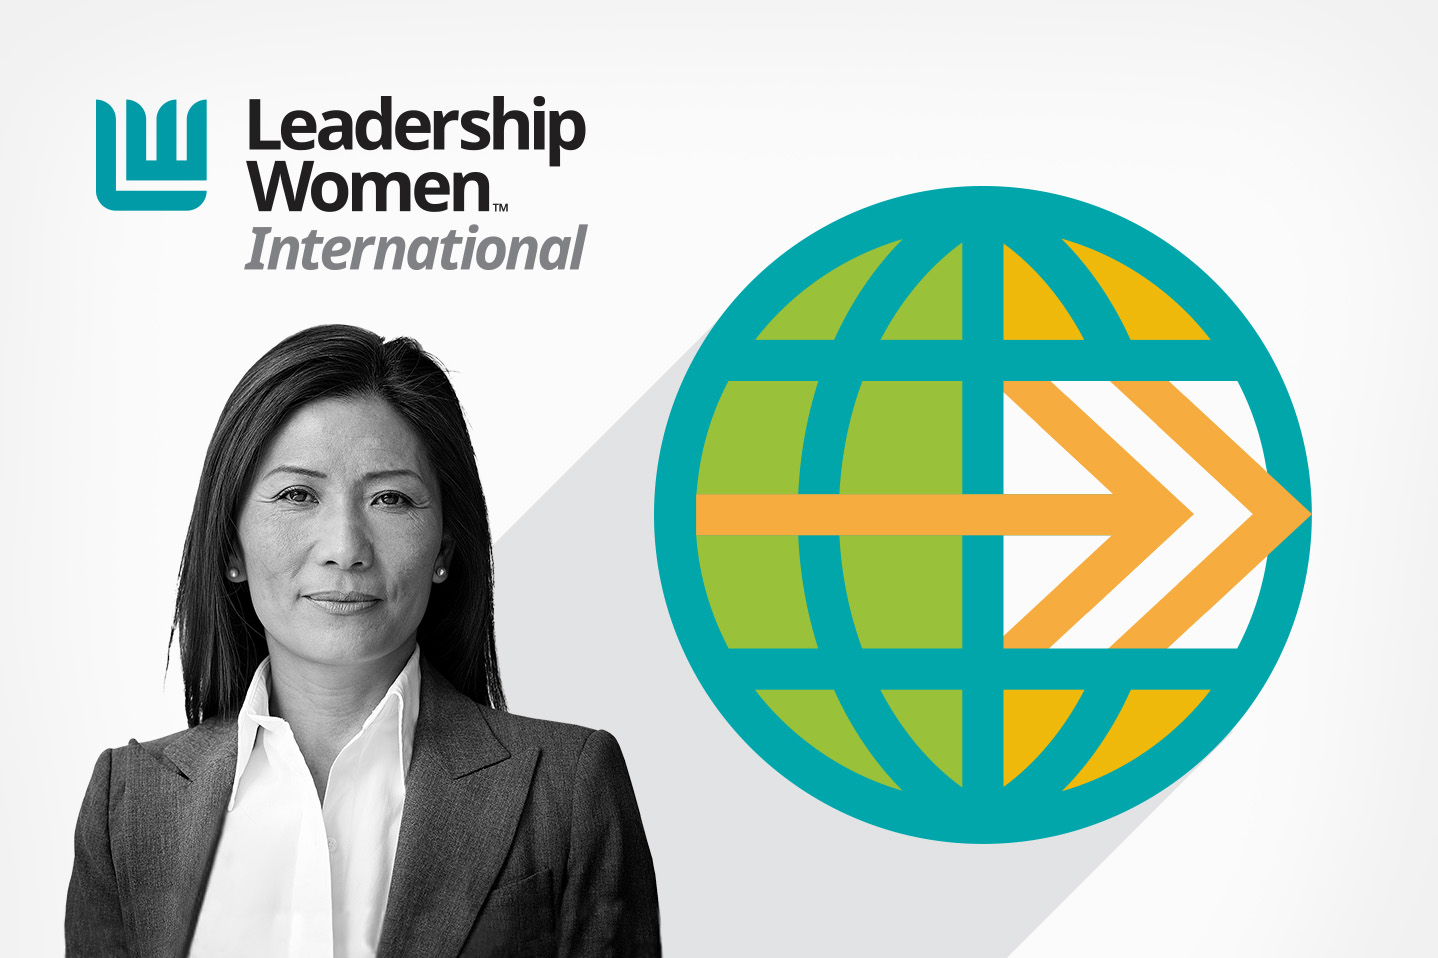 Leadership Women International